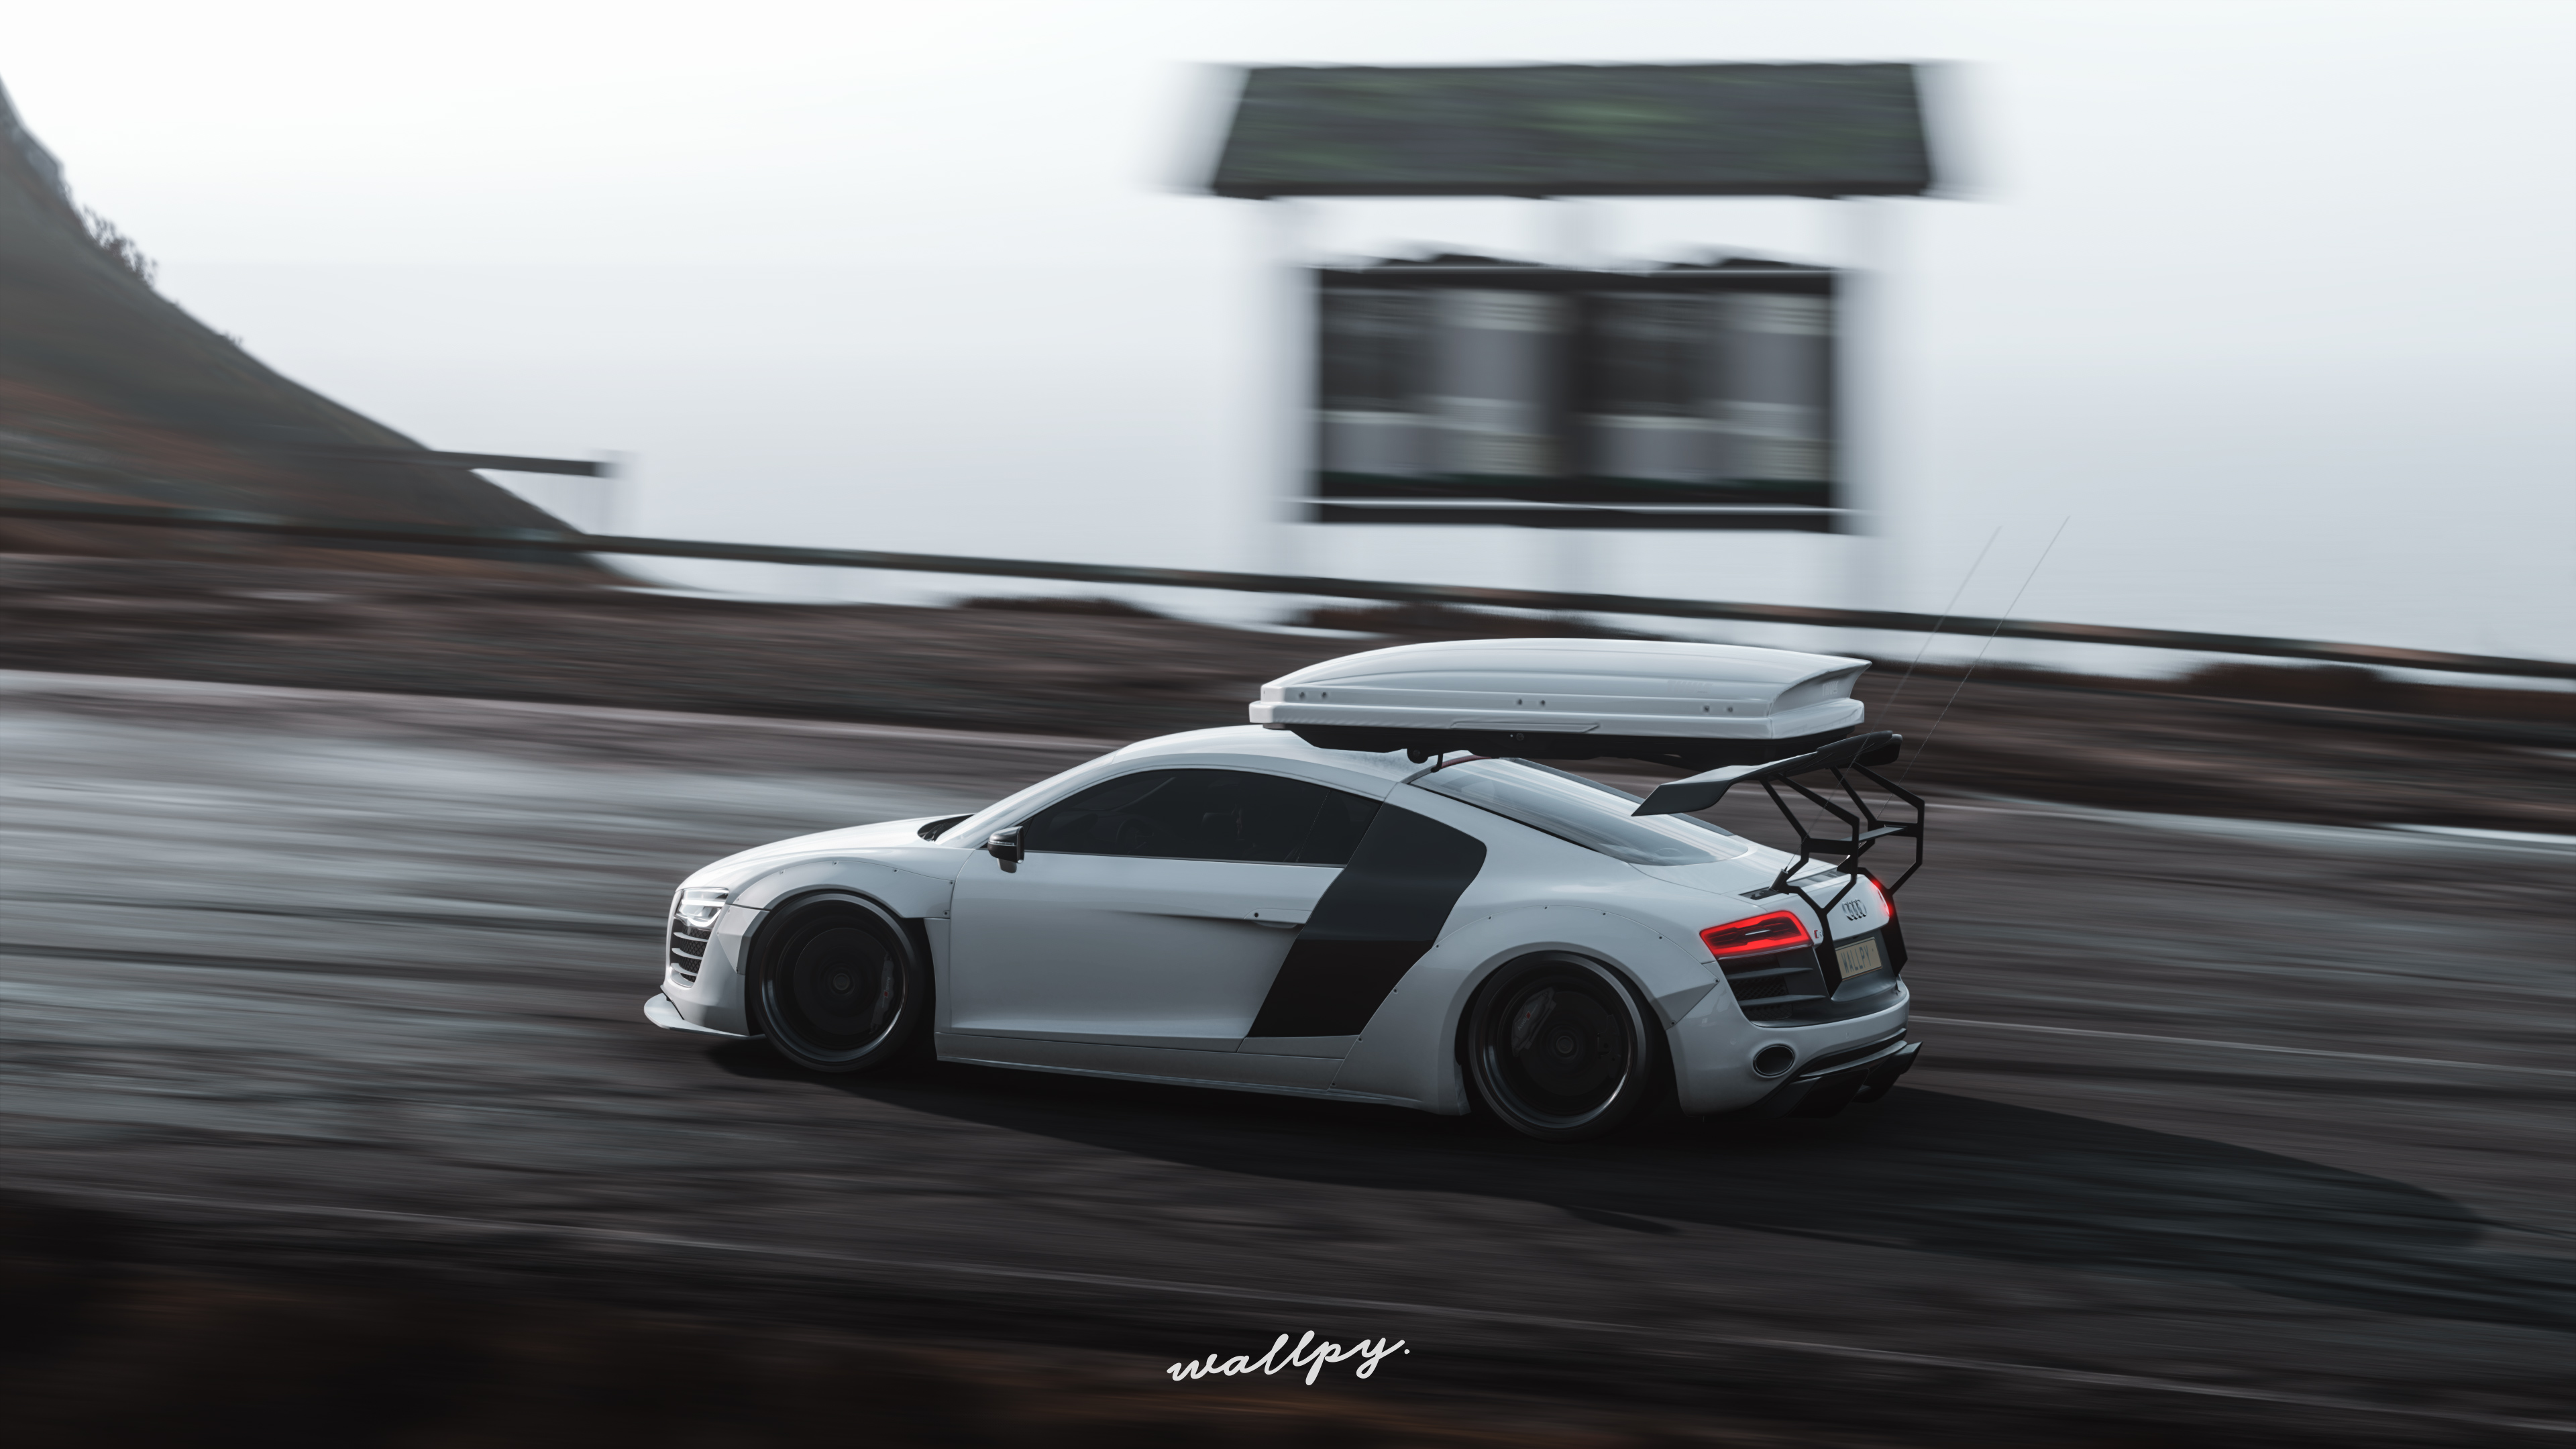 Forza horizon 4 audi 4k hd games 4k wallpapers images backgrounds photos and pictures - Forza logo wallpaper ...